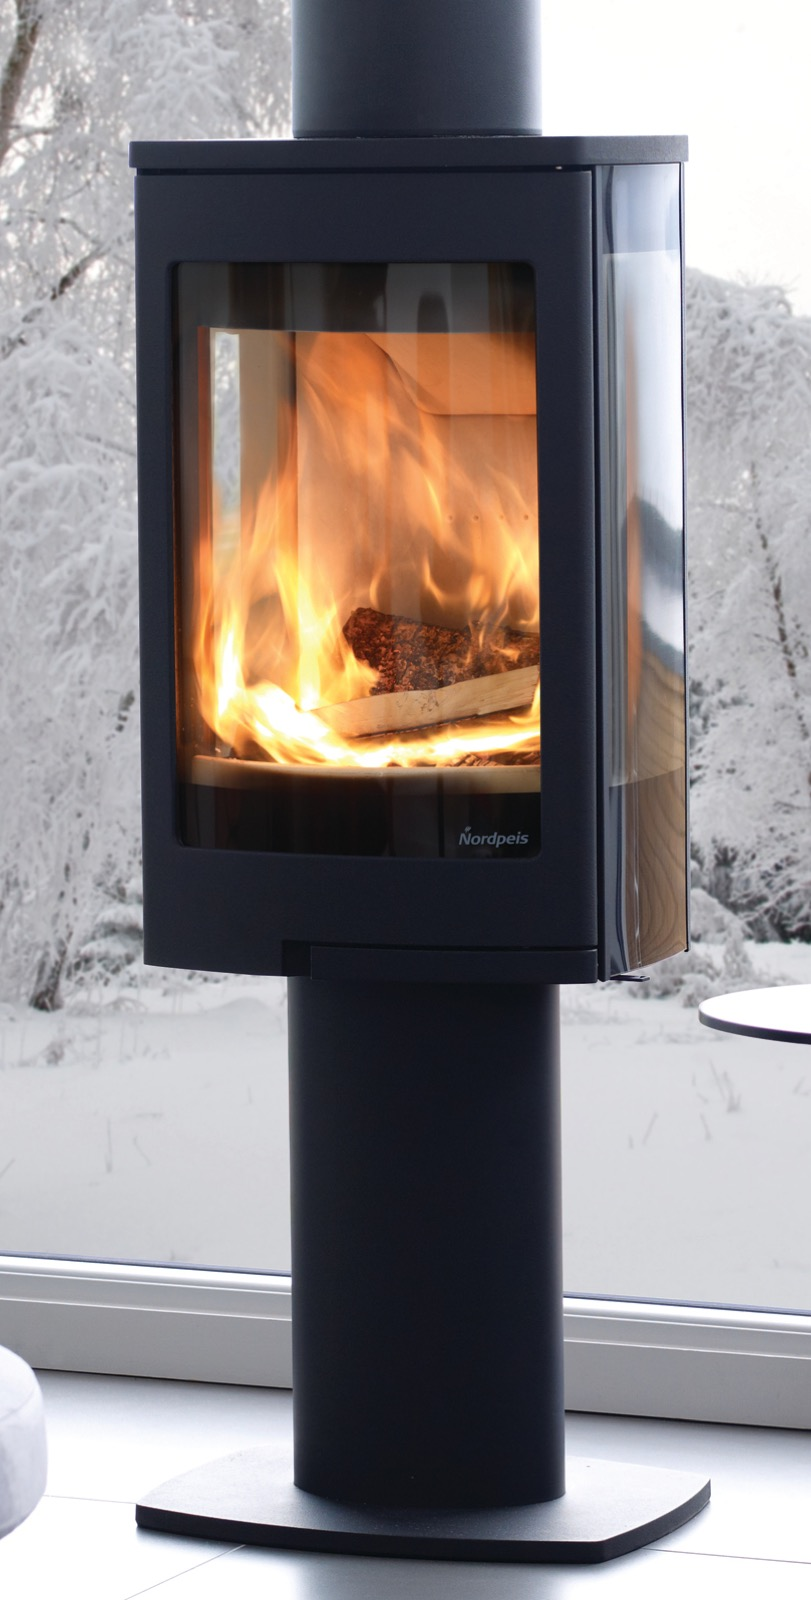 Nordpeis Duo 1 Glass Sided Wood Burning Stove With